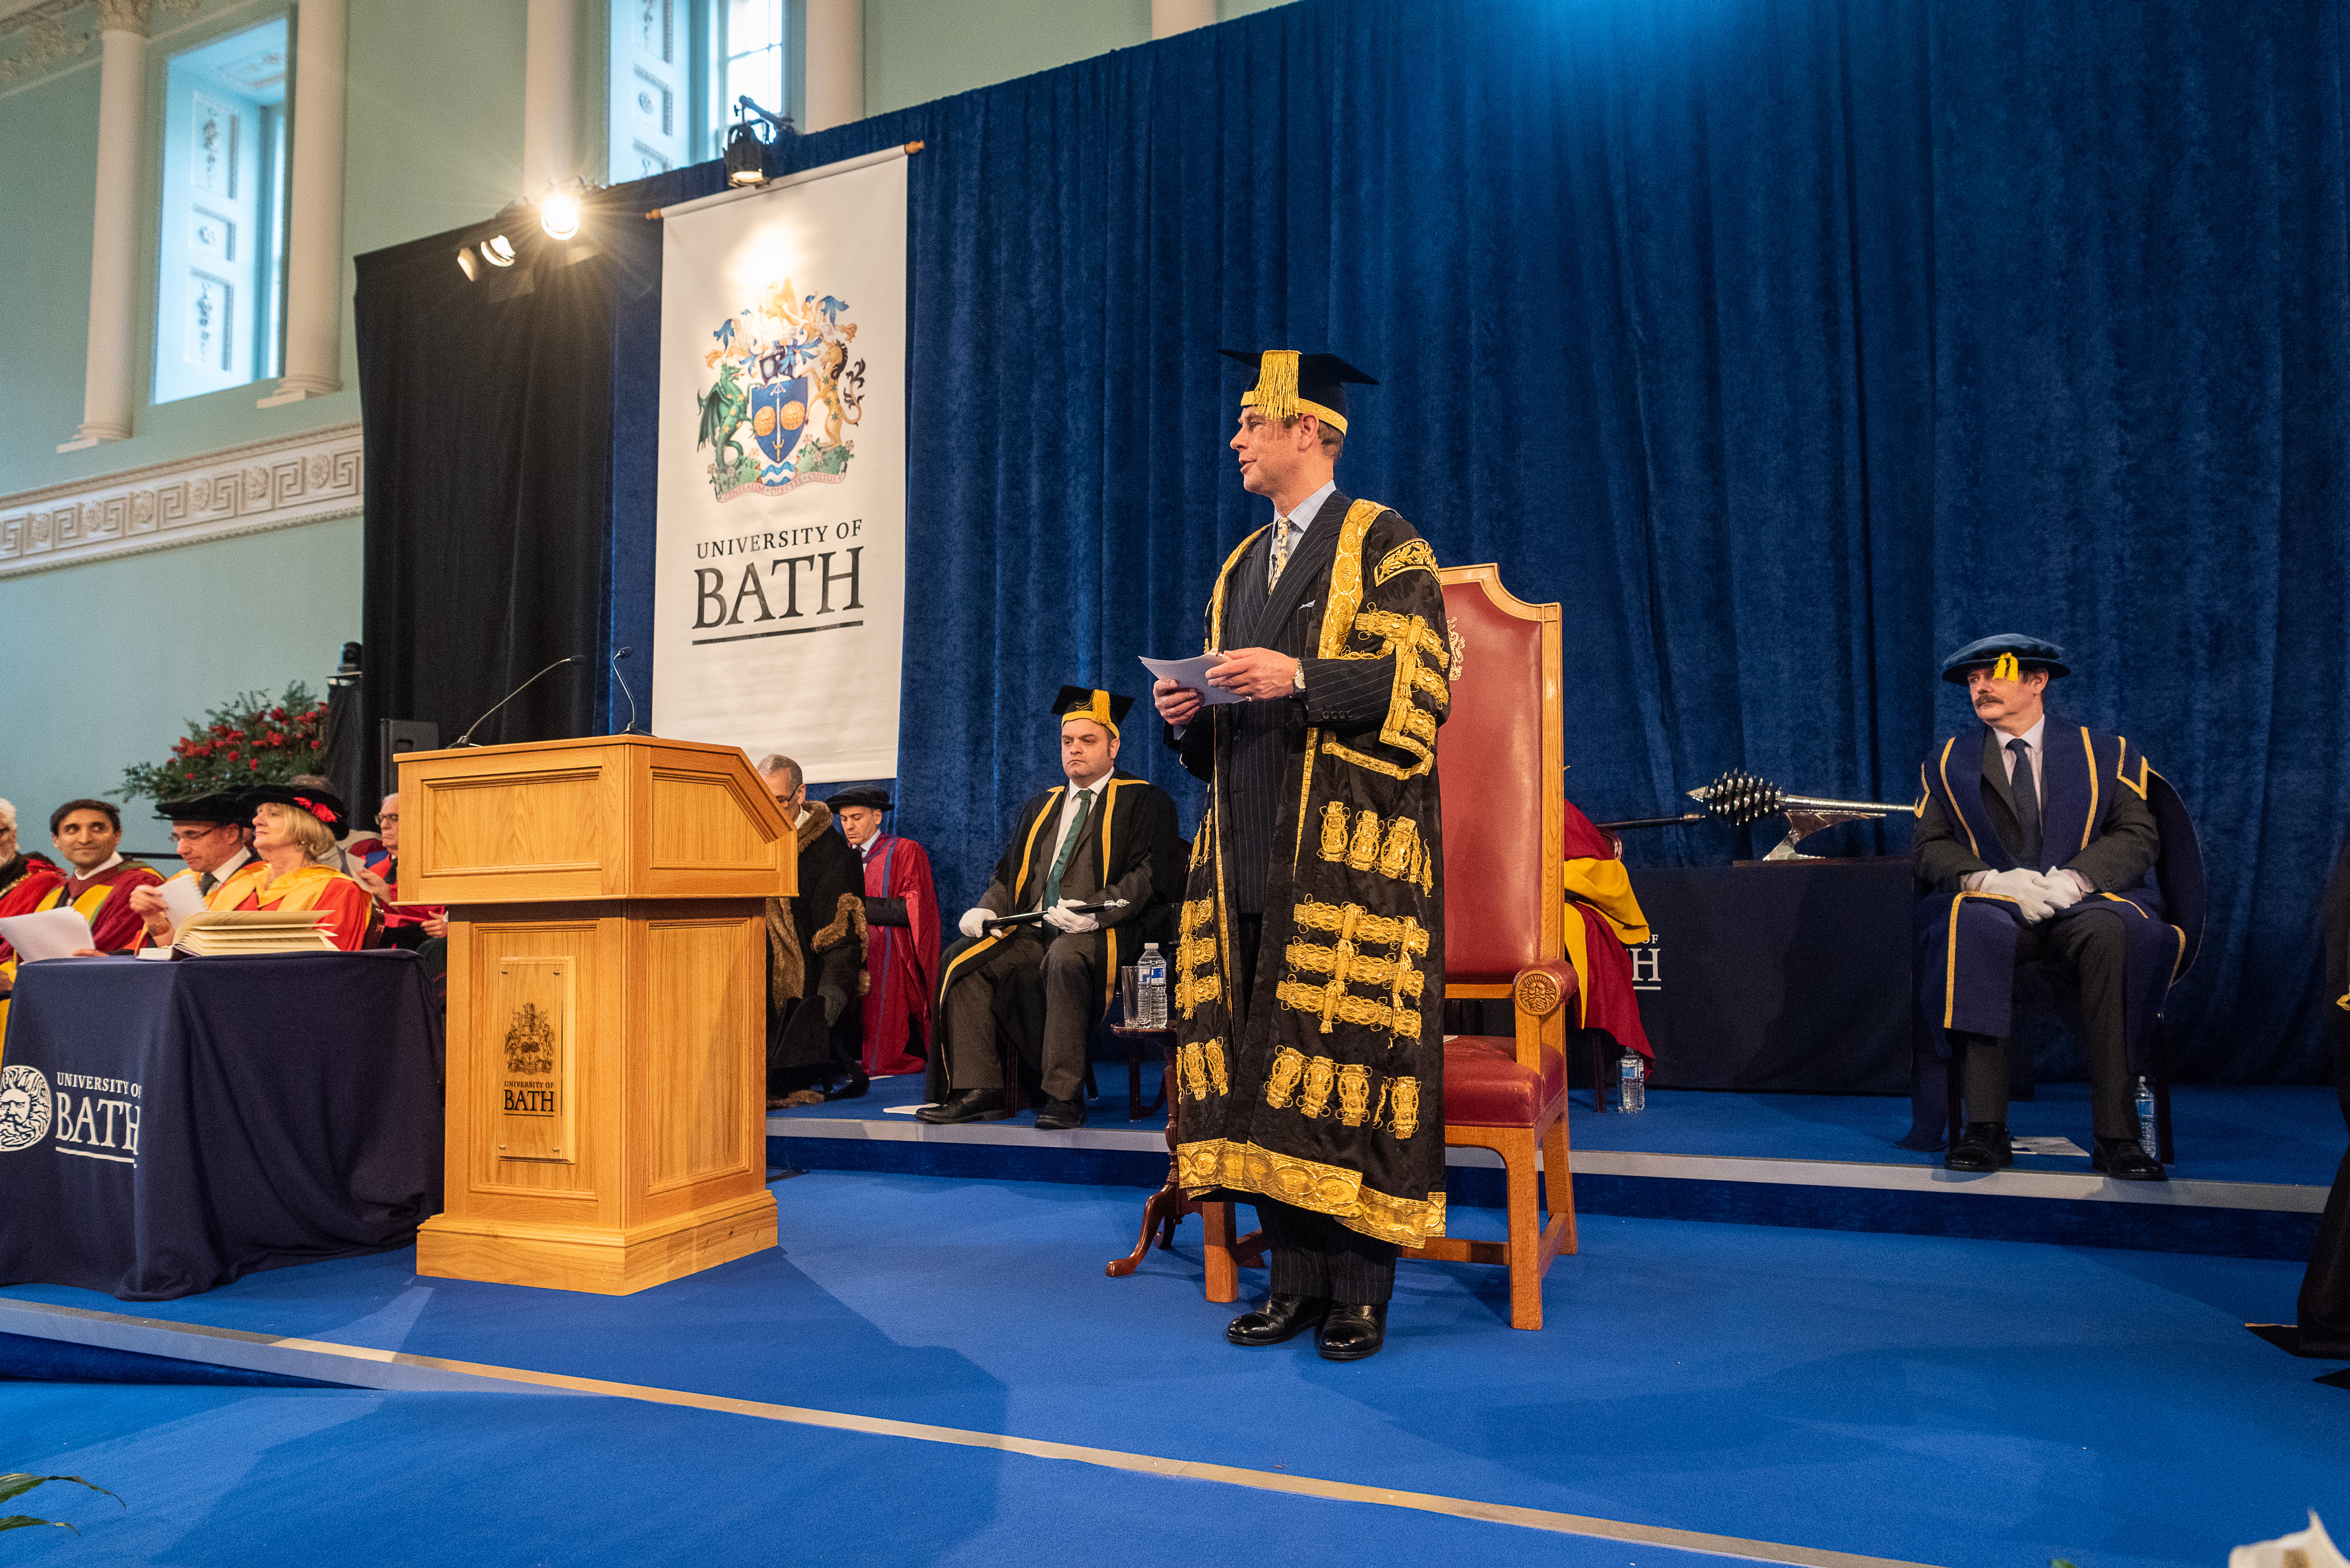 Prince Edward presiding over a graduation ceremony in his graduation outfit on a stage with dignitaries also on the stage